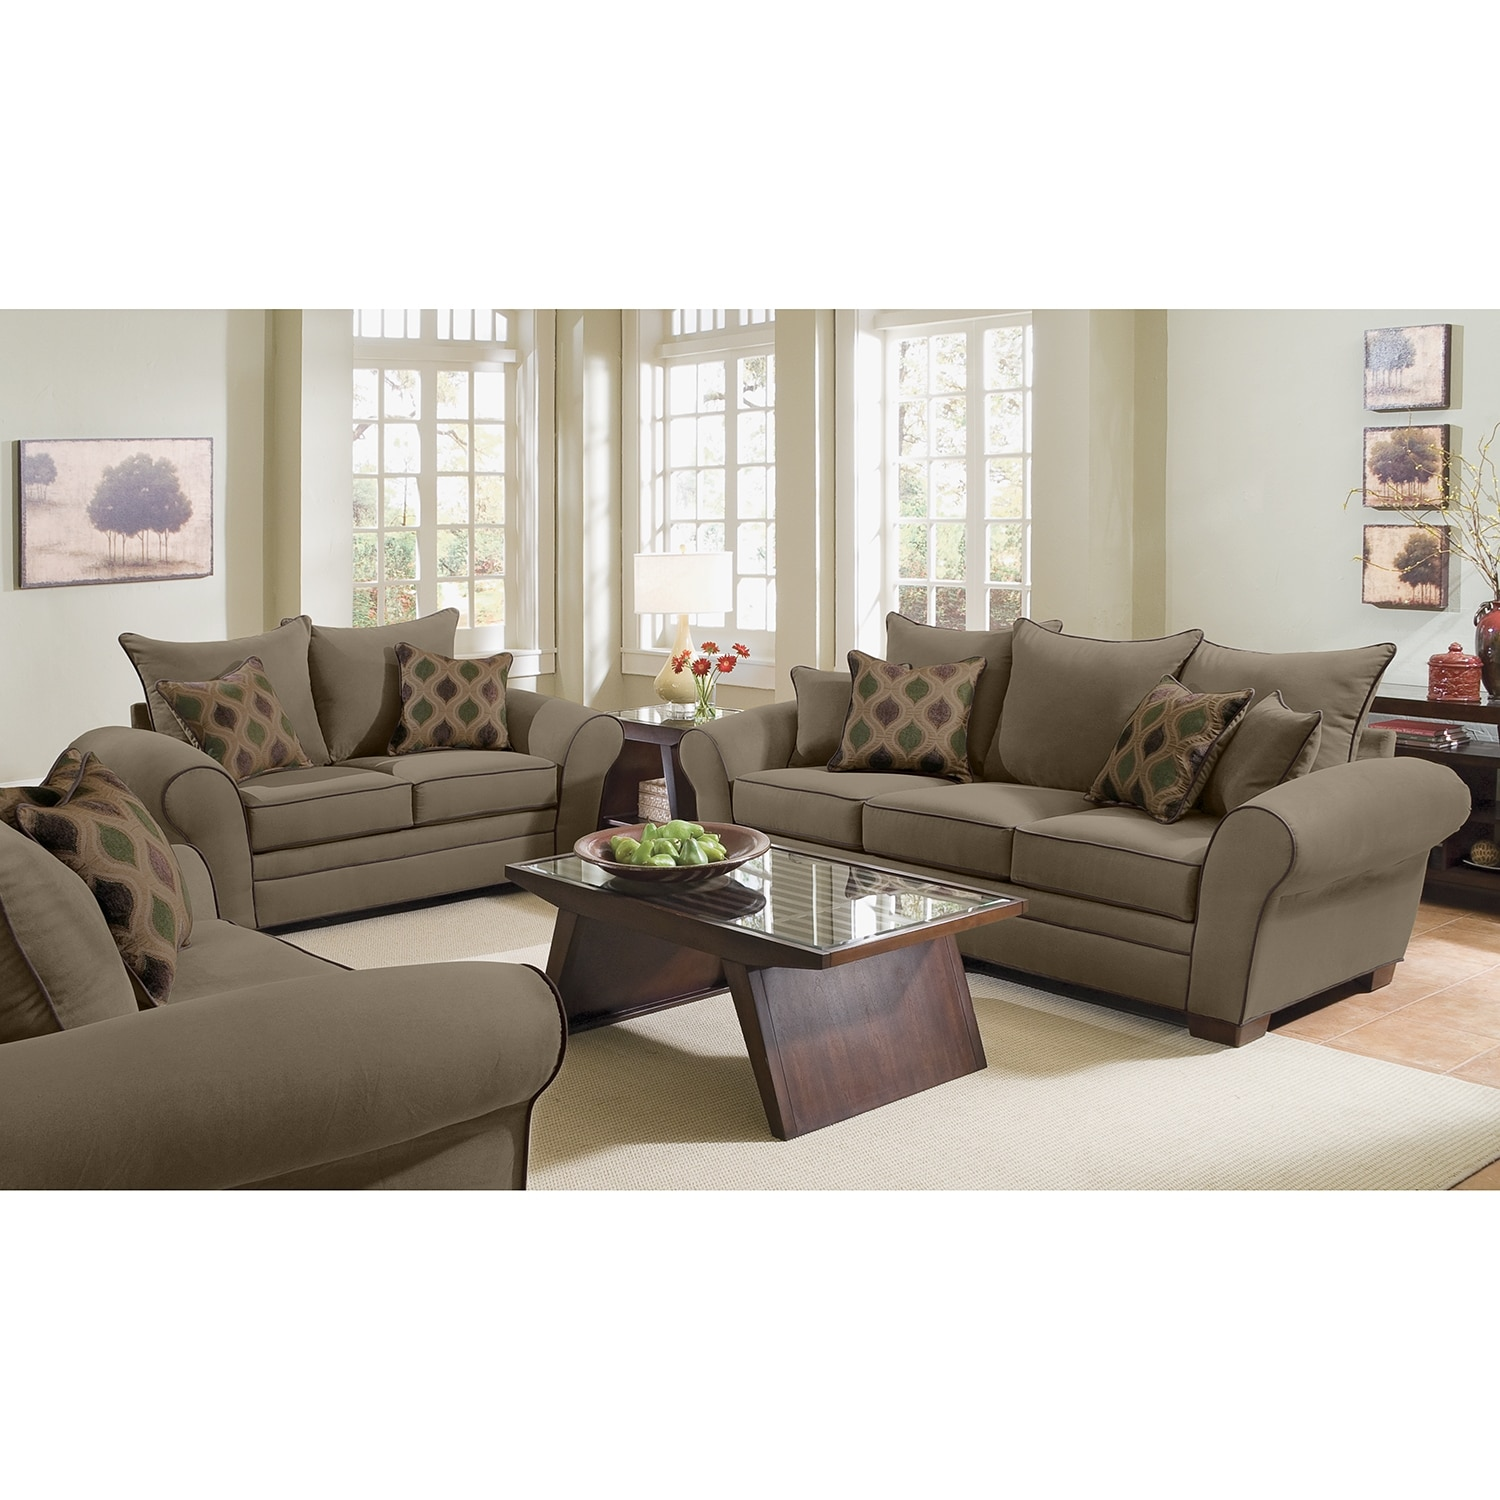 Rendezvous sofa and loveseat set olive value city for Couch und sofa